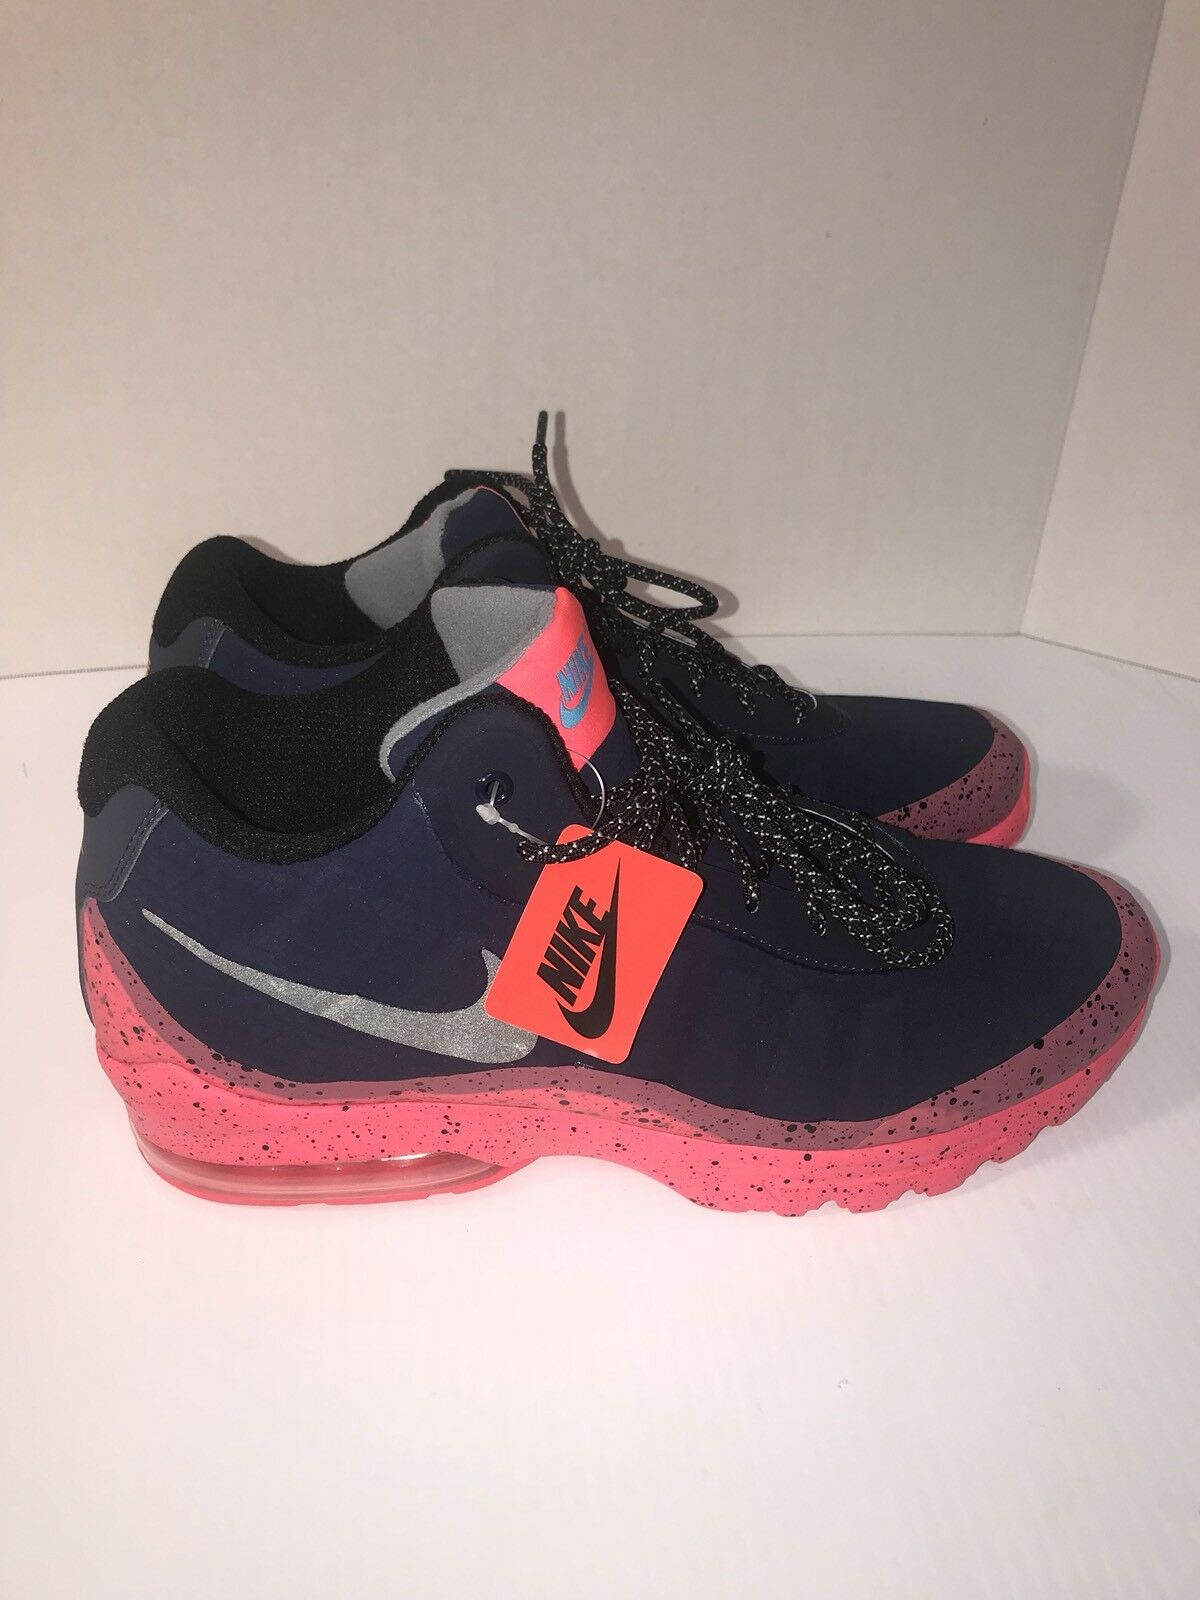 Men's Nike Air Max Invigor Mid Shoe 858654-401 OBSIDIAN/BLACK-SOLAR RED Sz 11.5